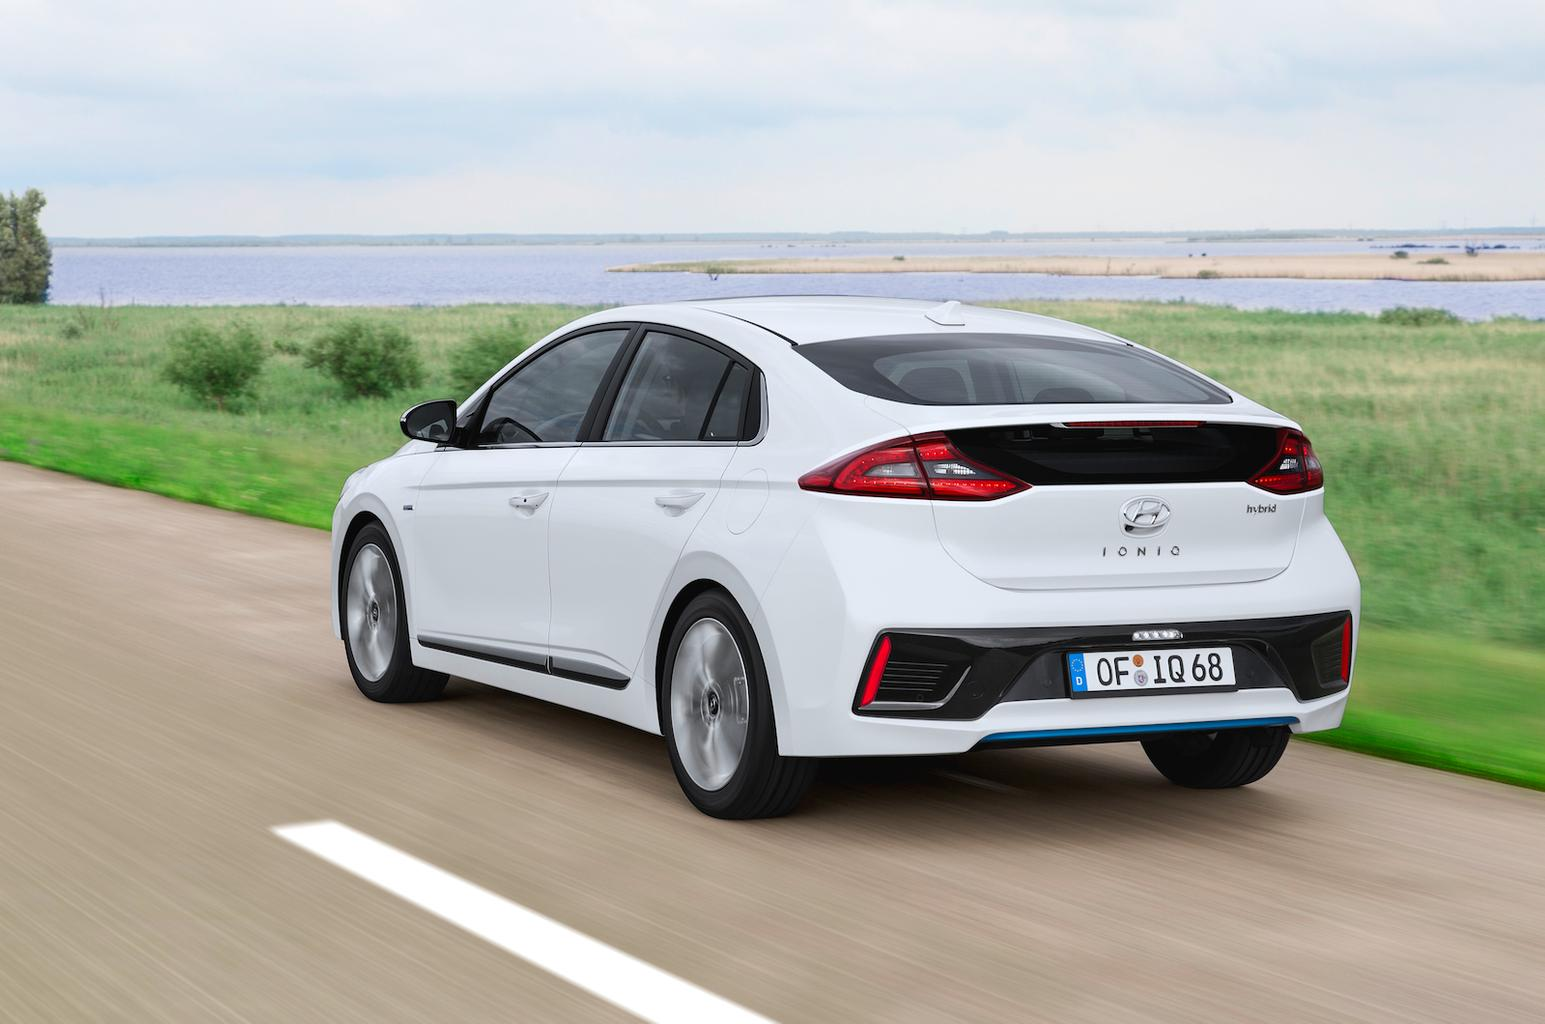 2016 Hyundai Ioniq - video reader review